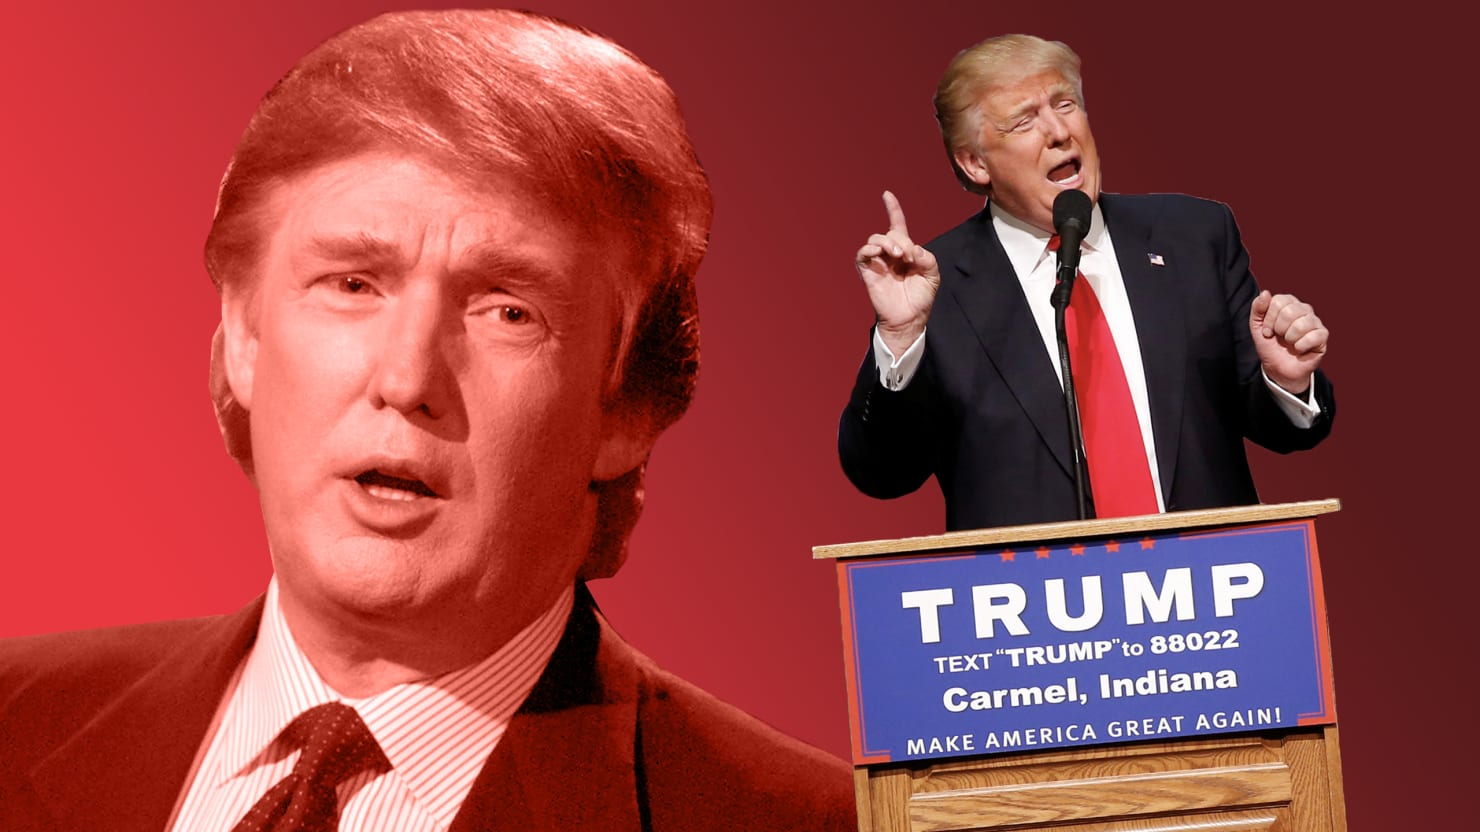 Rise V Auto >> Donald J. Trump in 2000: How I'll Be the First Celebrity ...